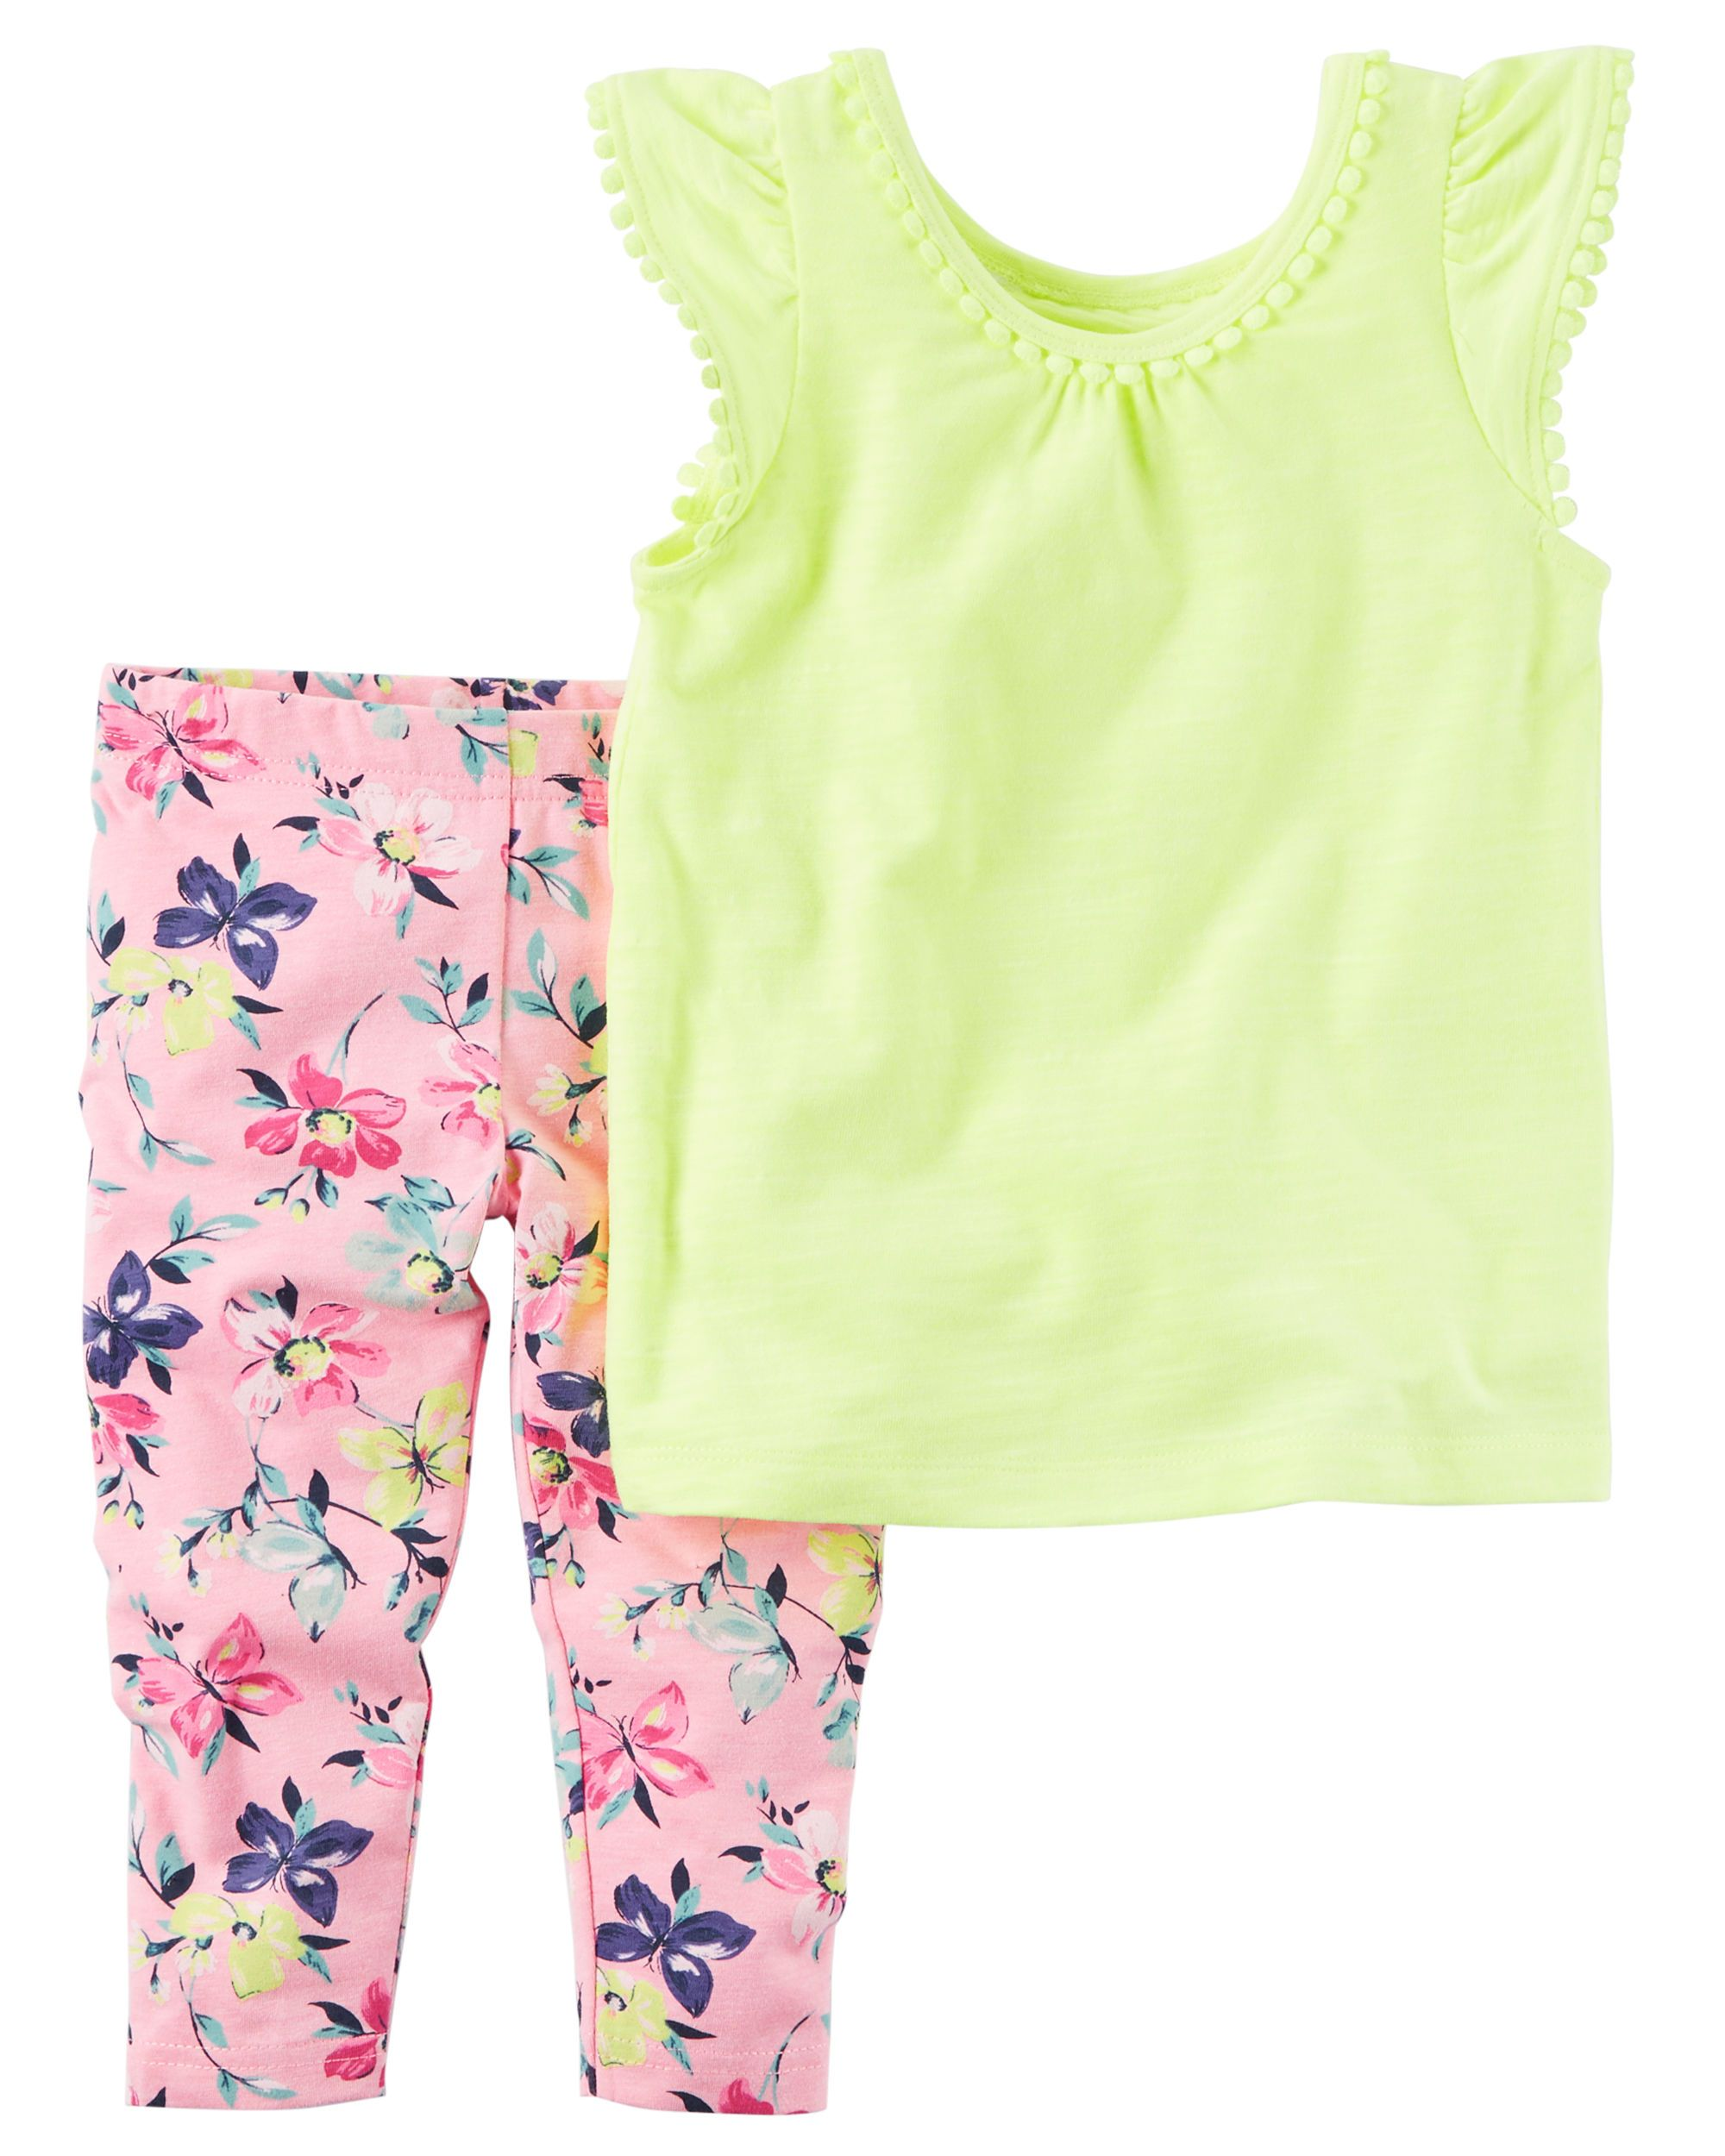 f61039120b88d Baby Girl 2-Piece Neon Tank & Capri Legging Set Featuring a pom-trimmed neon  tank and floral printed capri leggings, this warm weather combo has her  dressed ...